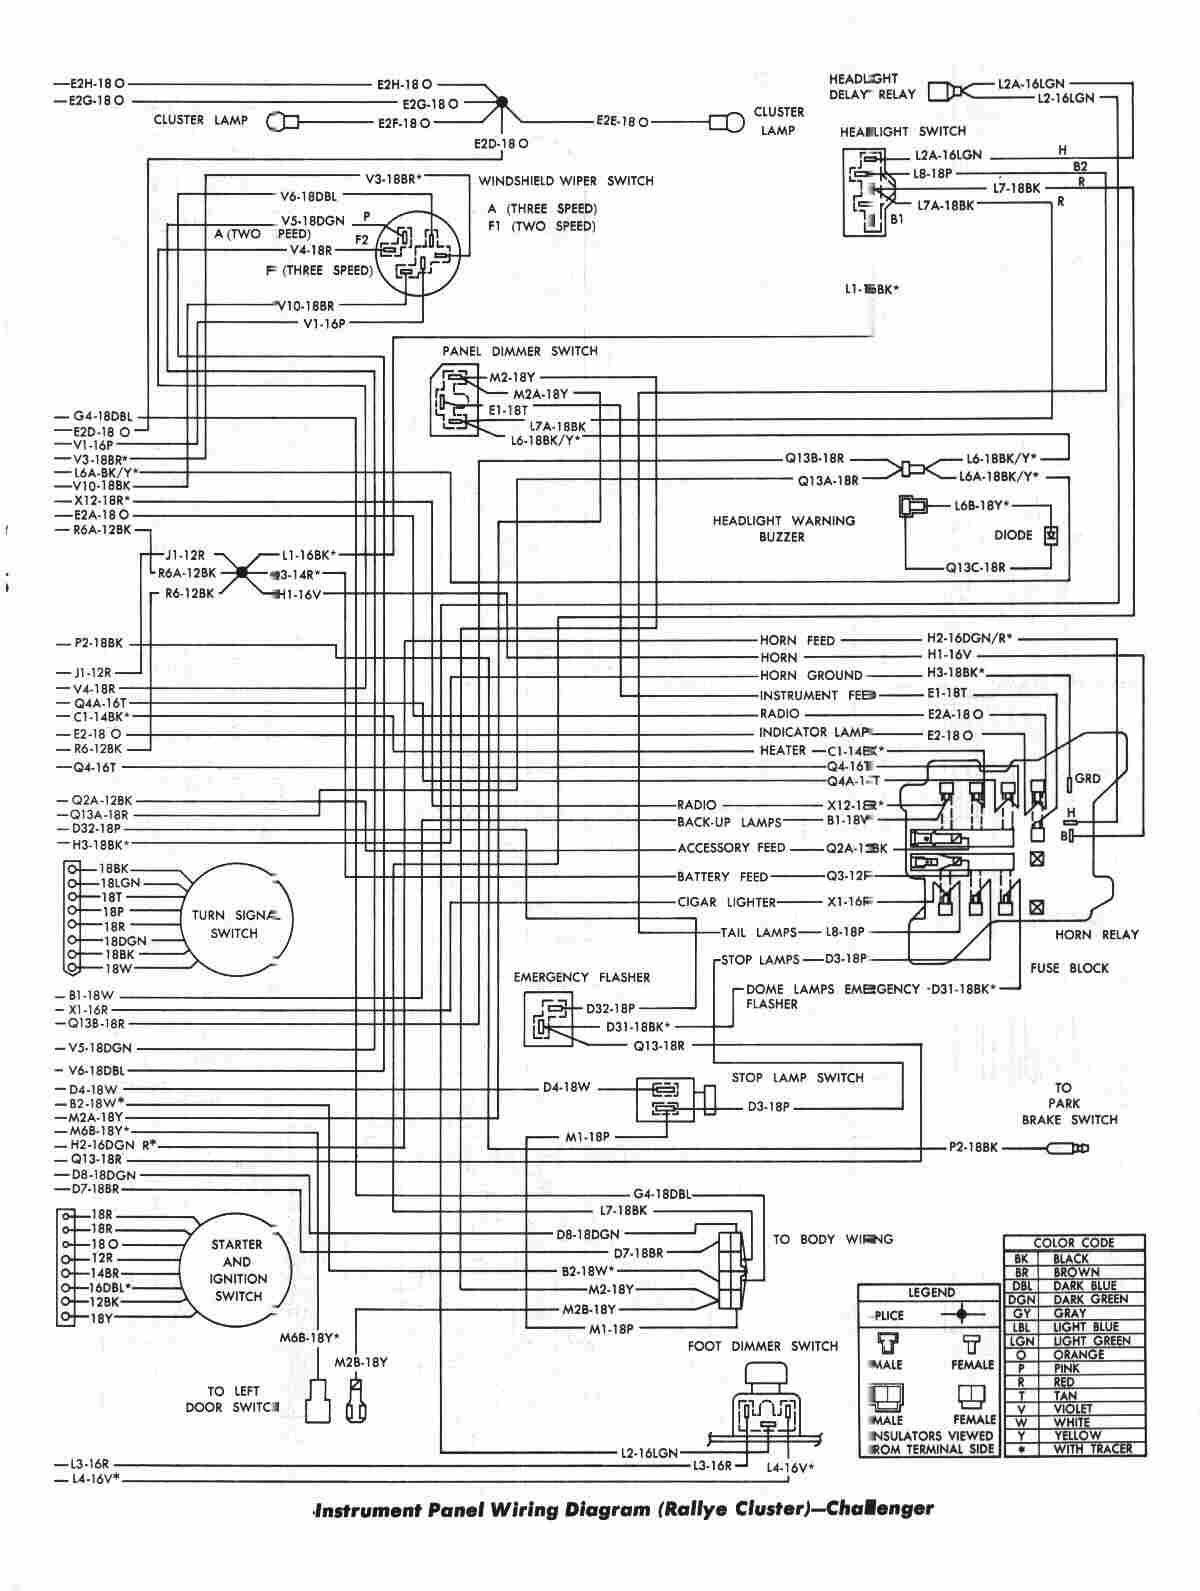 plc panel wiring diagram diagram, 2012 dodge charger dodge dart body dodge dart wiring diagrams #8